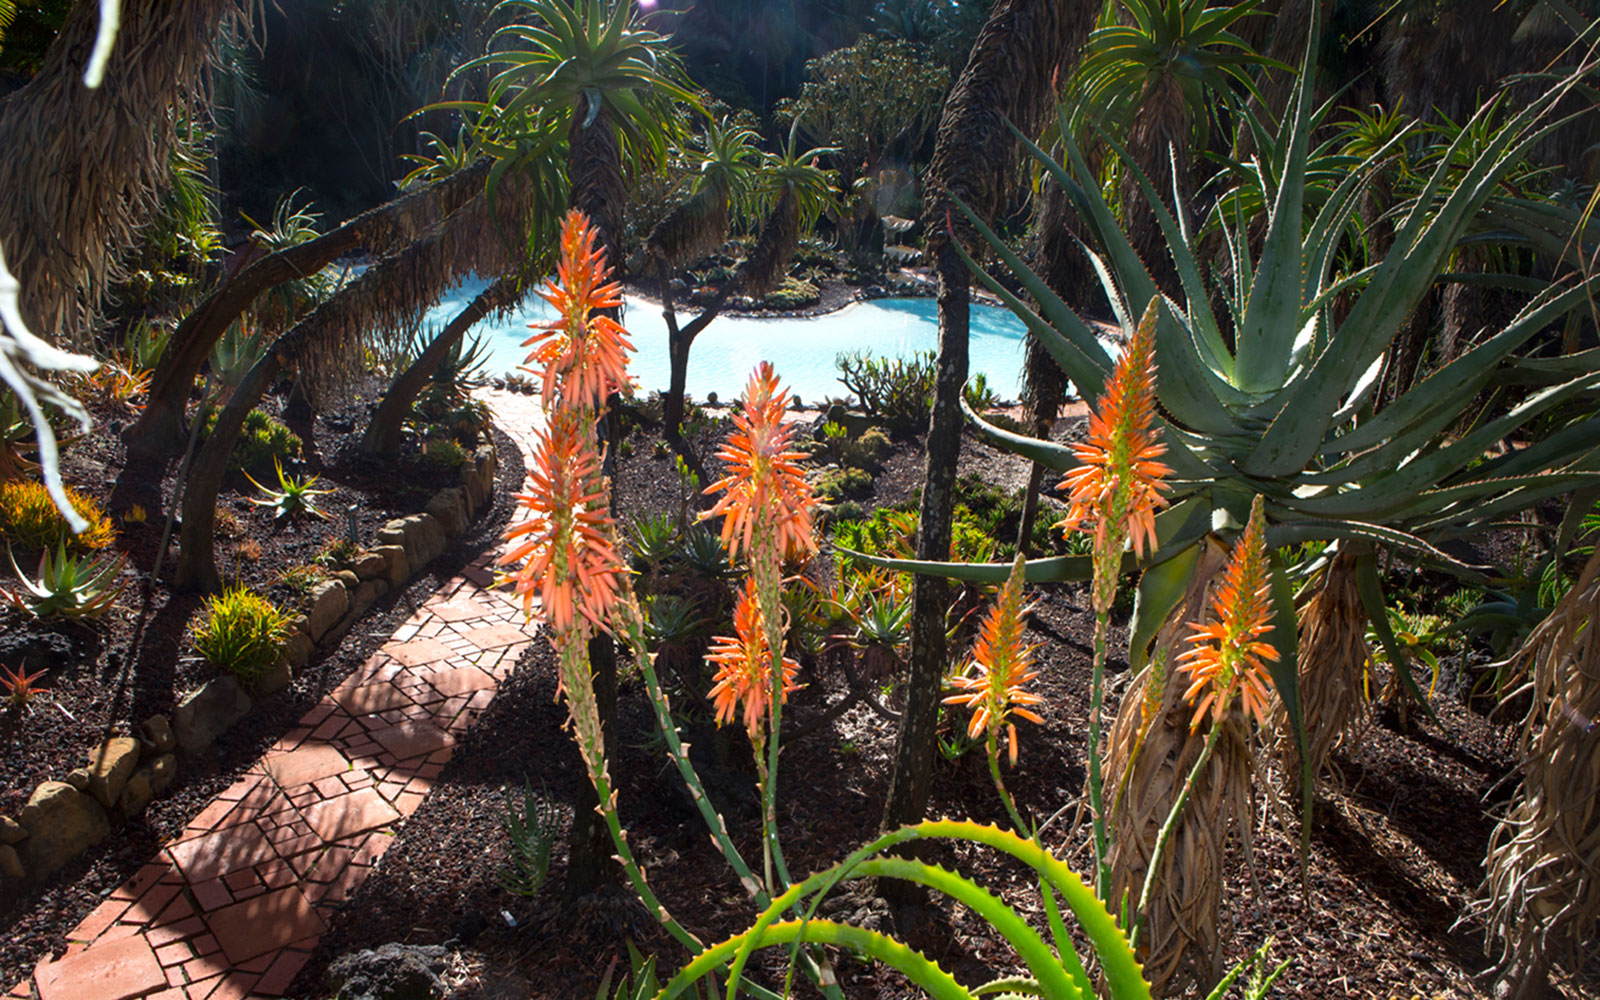 America's Most Beautiful Gardens: Lotusland